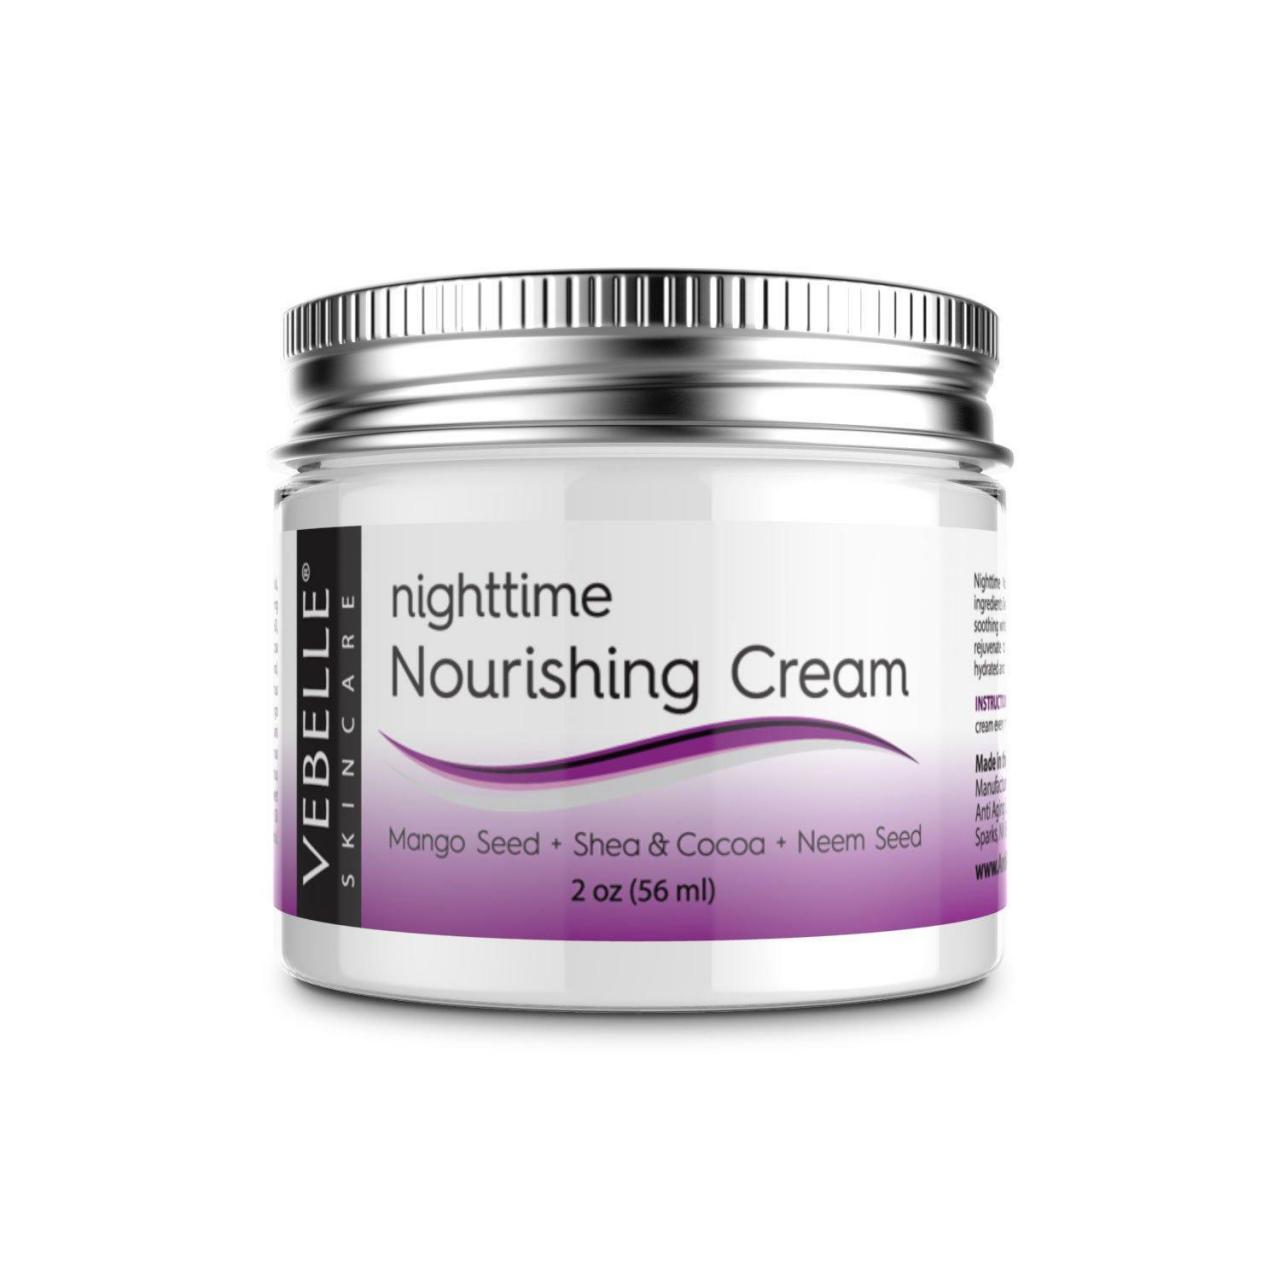 Cheap Nighttime Nourishing Cream - 2 oz for sale